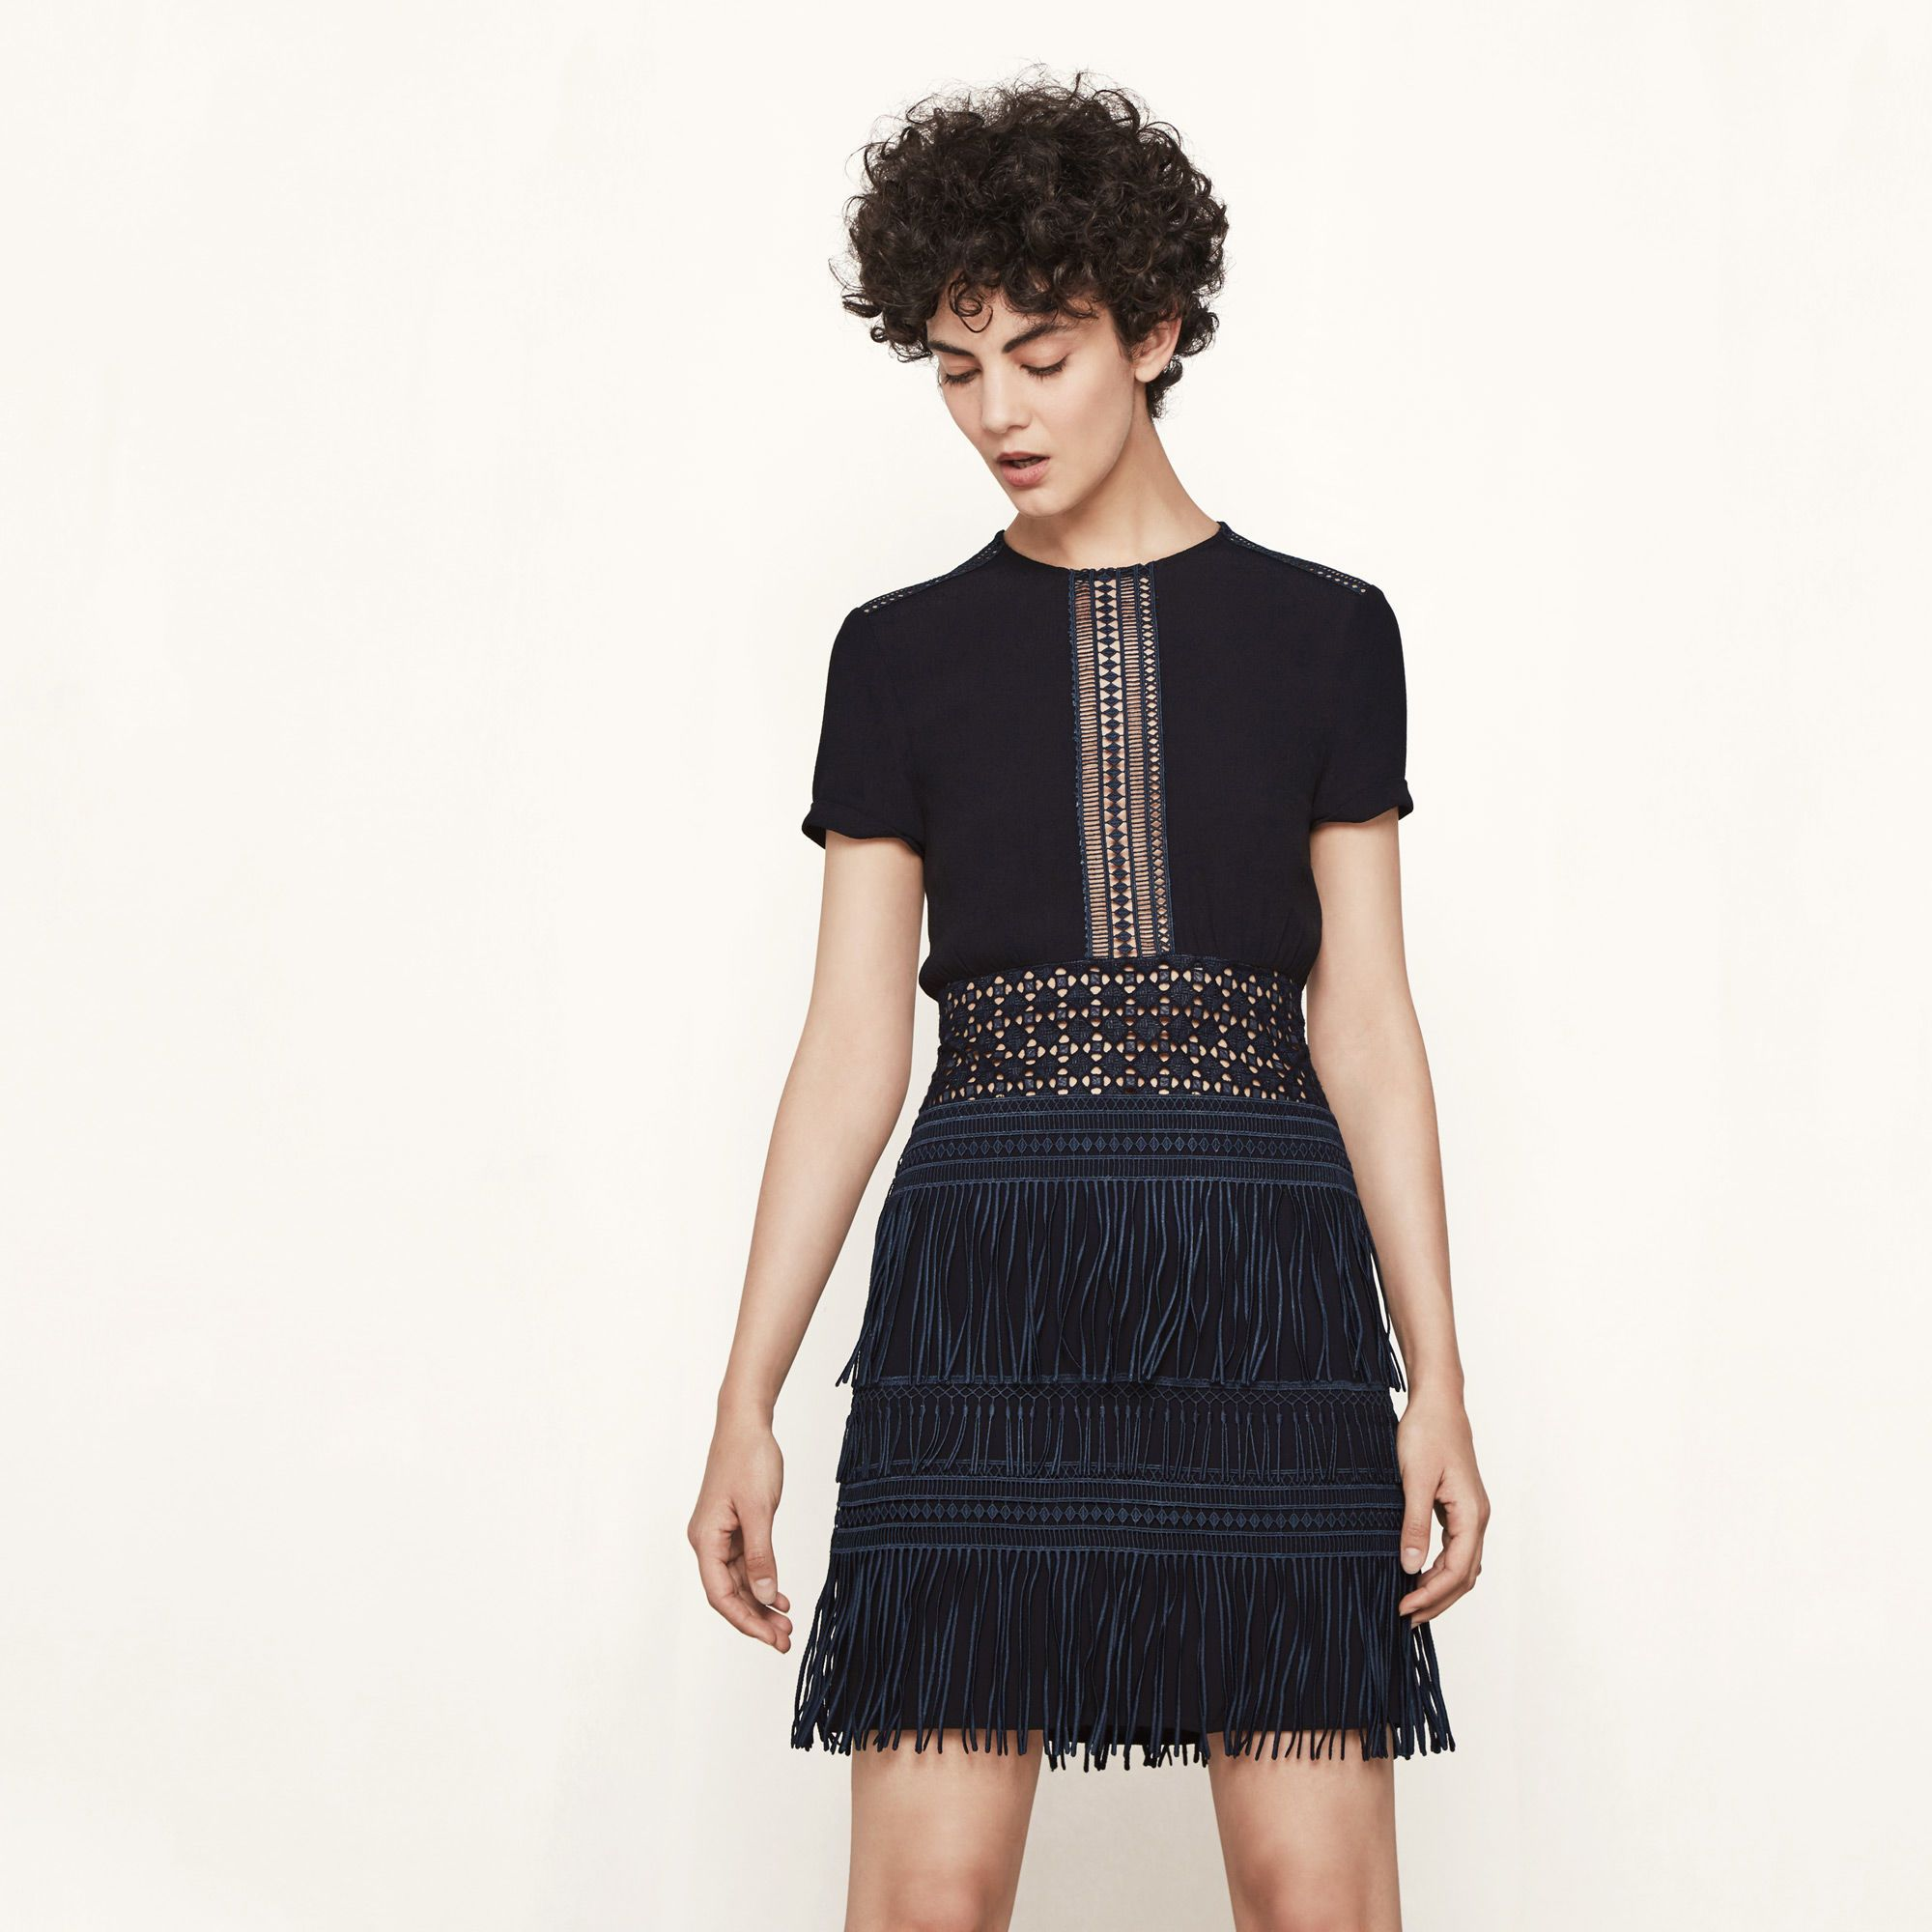 REIA Fringed dress with inlaid embroidery